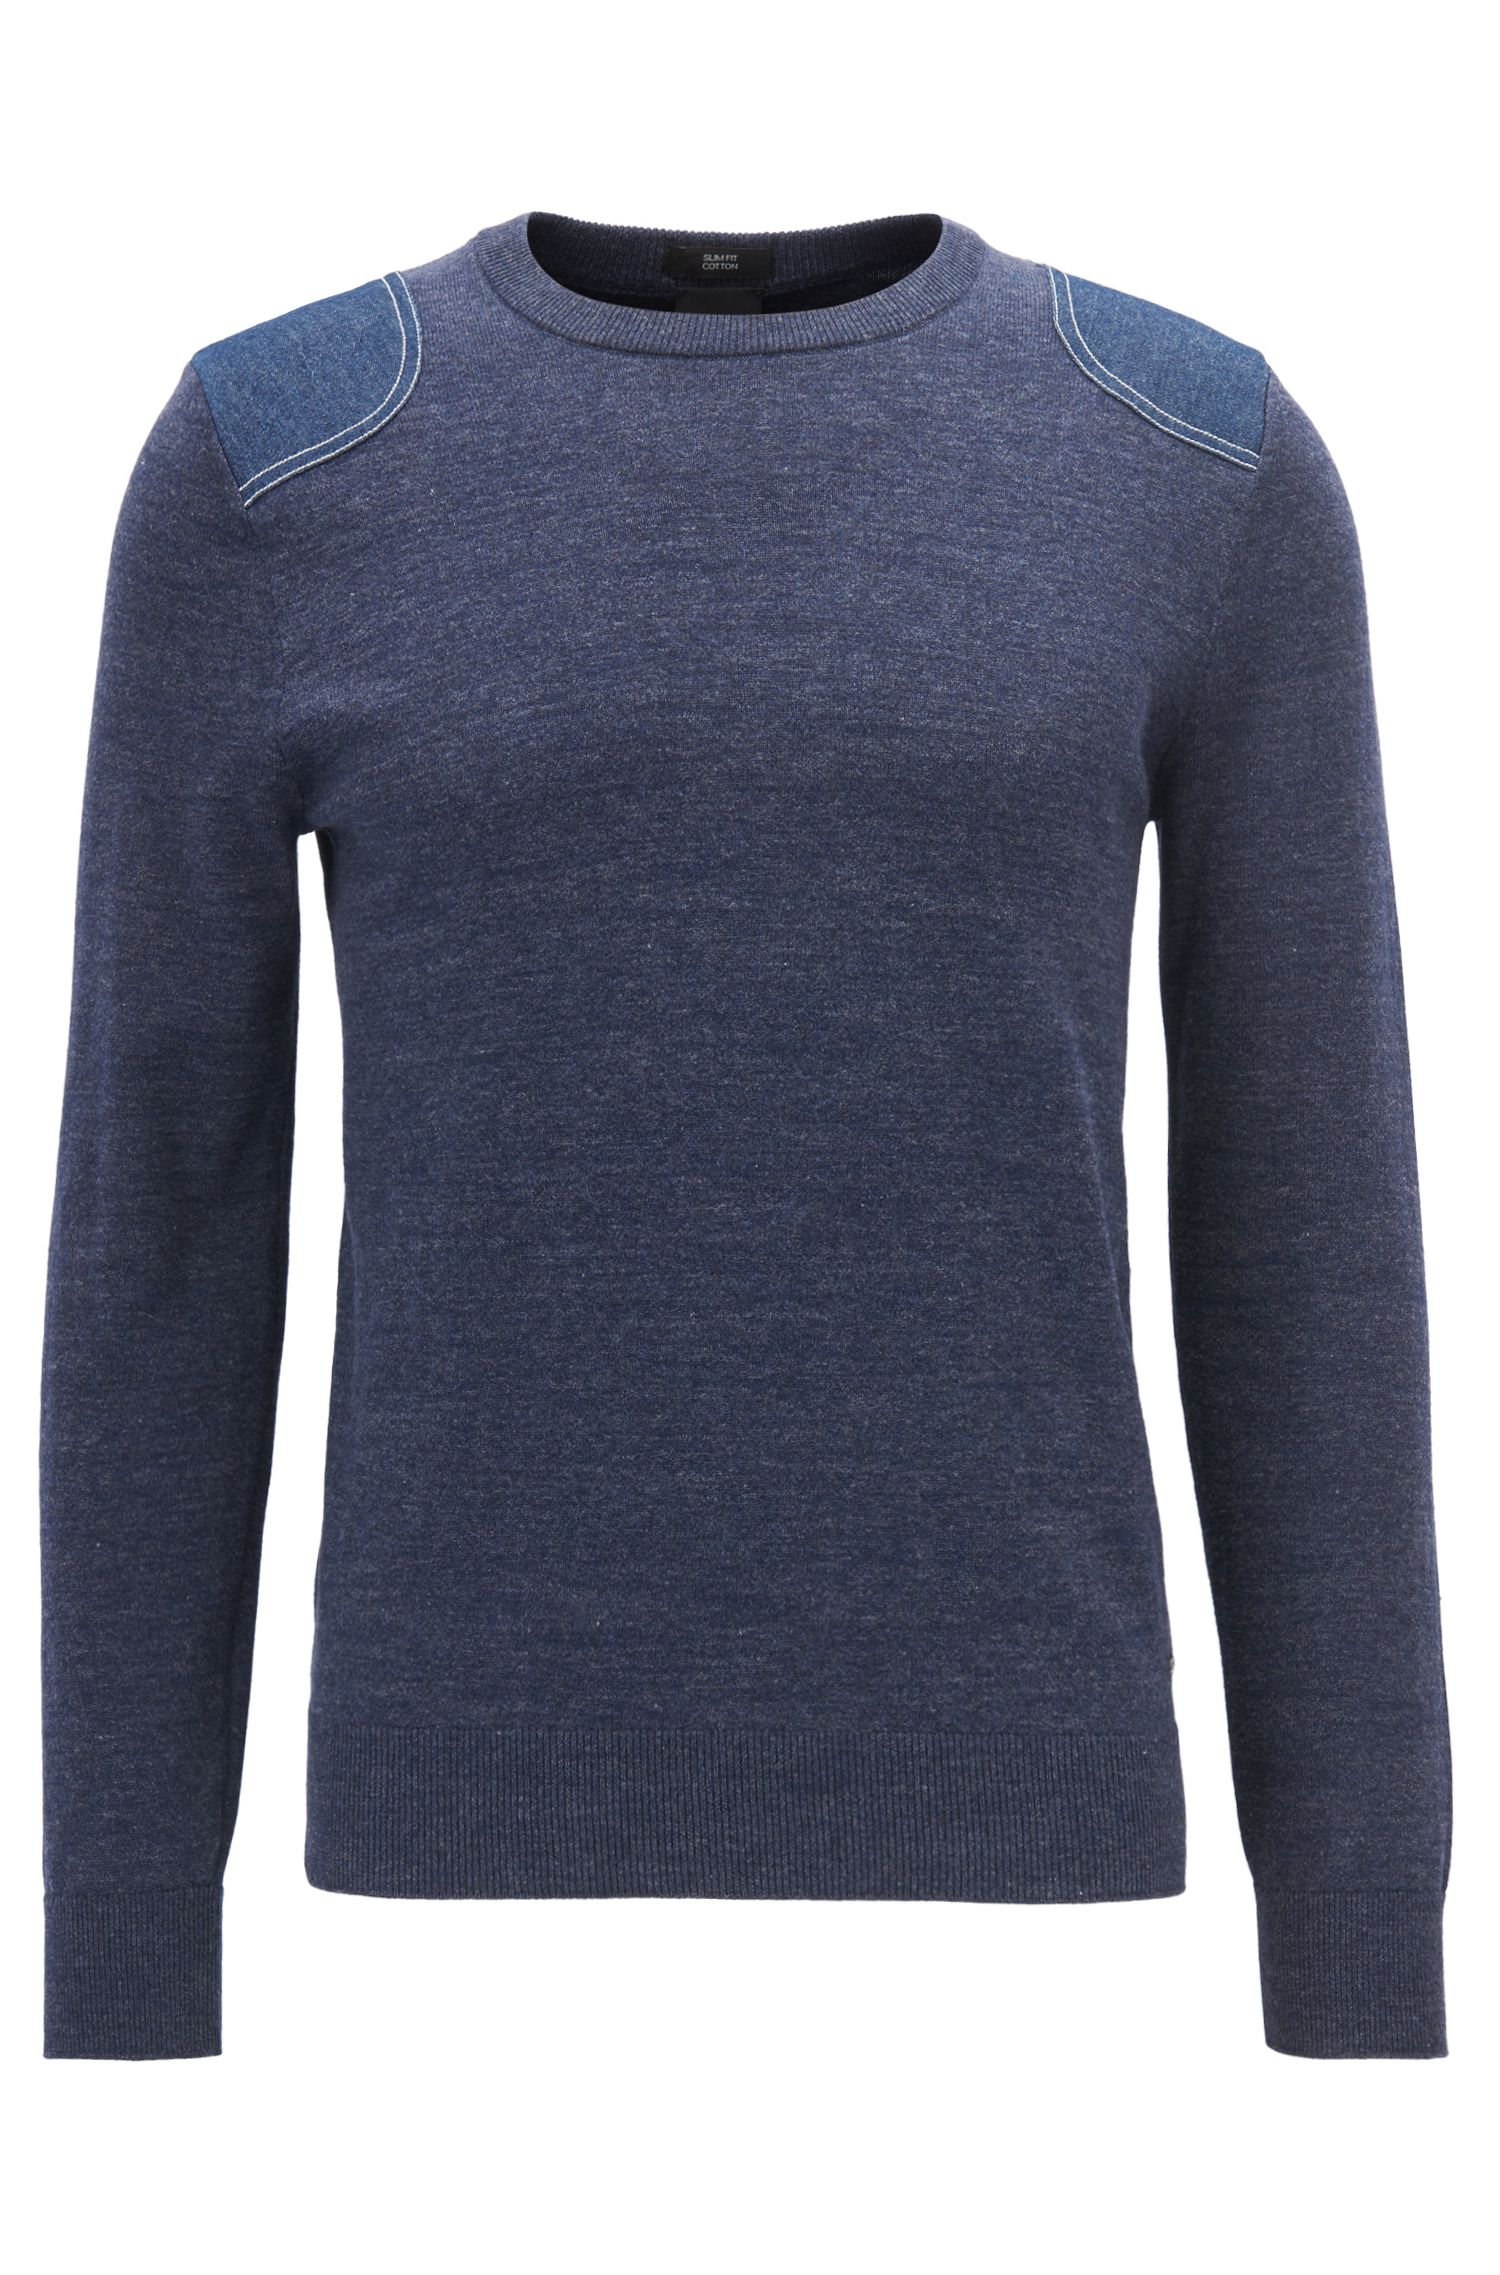 Knitted cotton sweater with French stitching